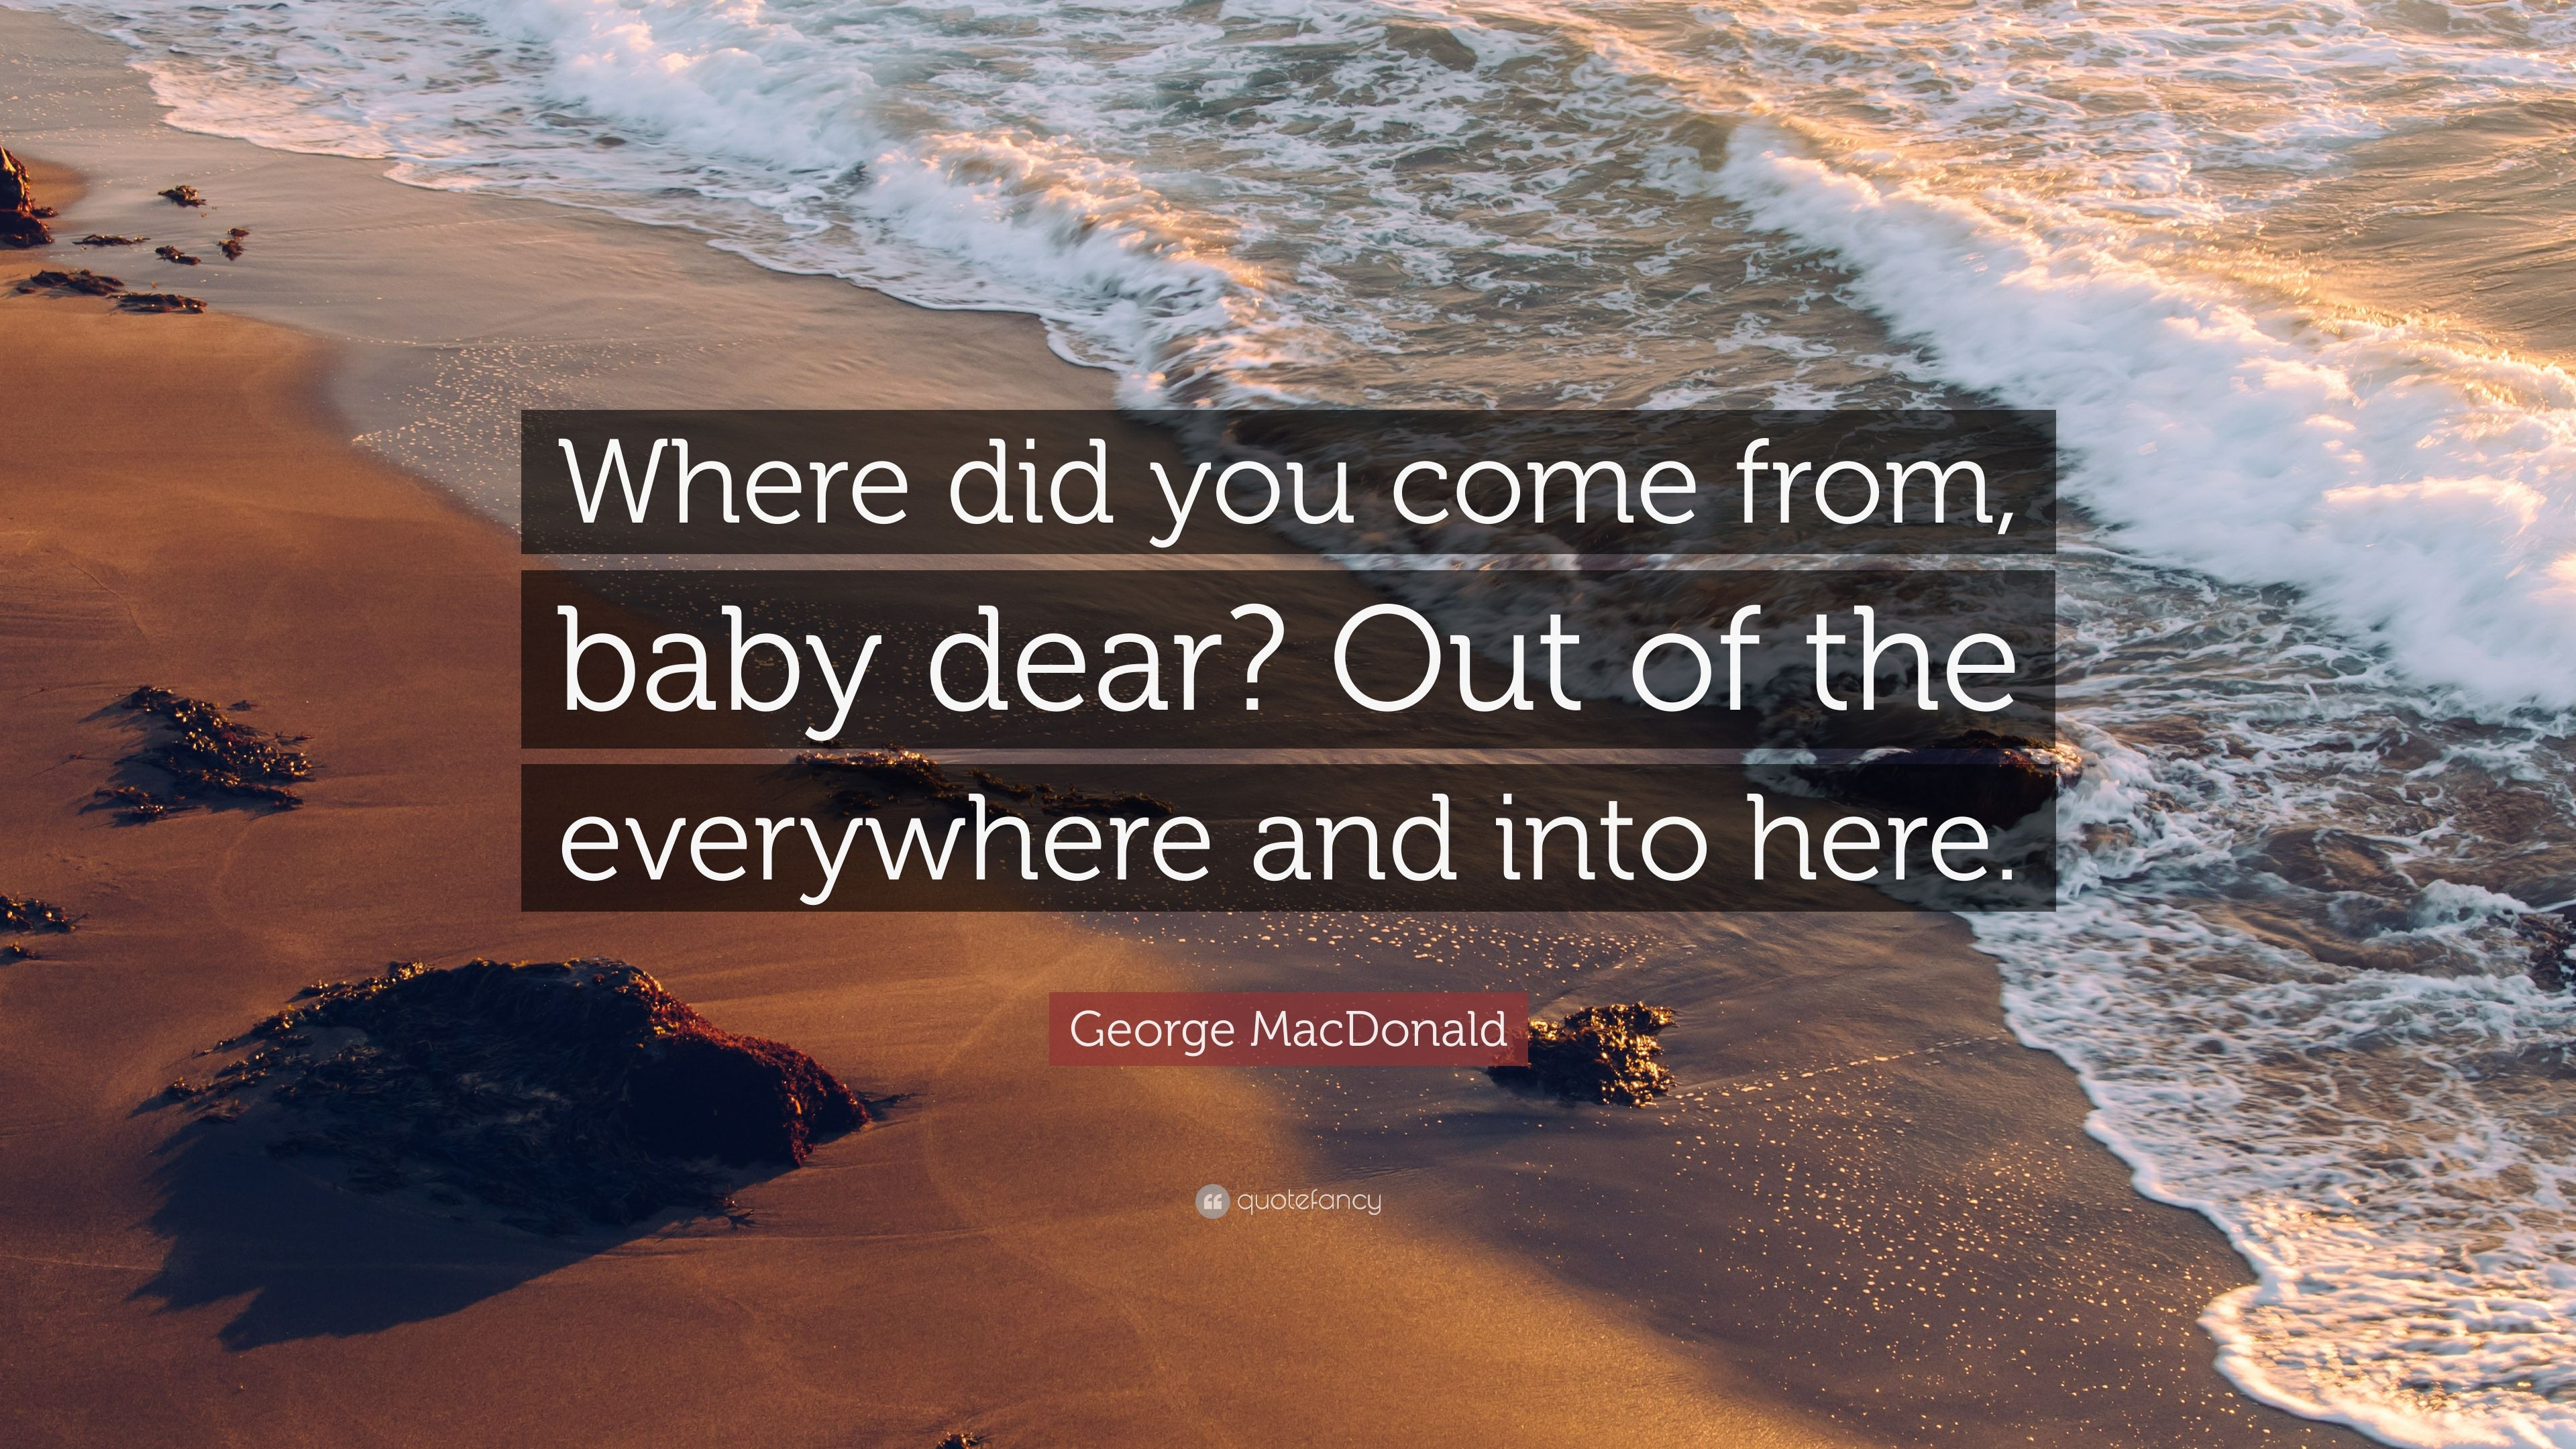 where did you come from baby dear george macdonald